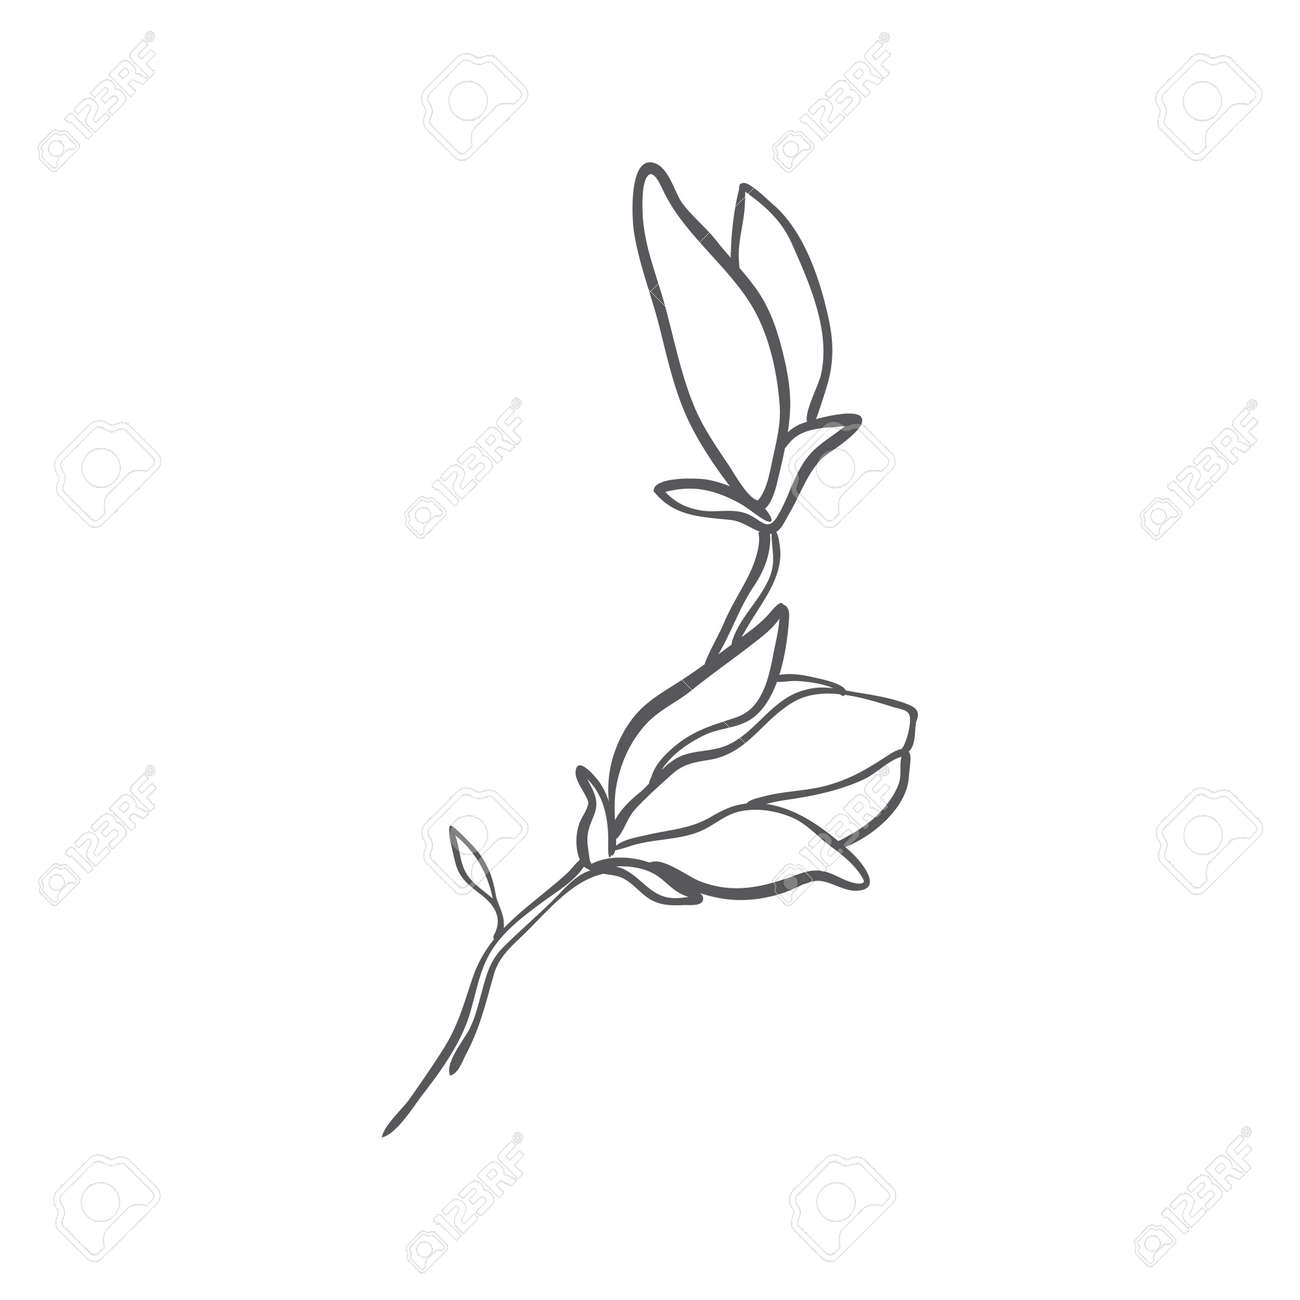 Sketch of graphic hand-drawn magnolia flower on a white background. Vector illustration. - 168291265